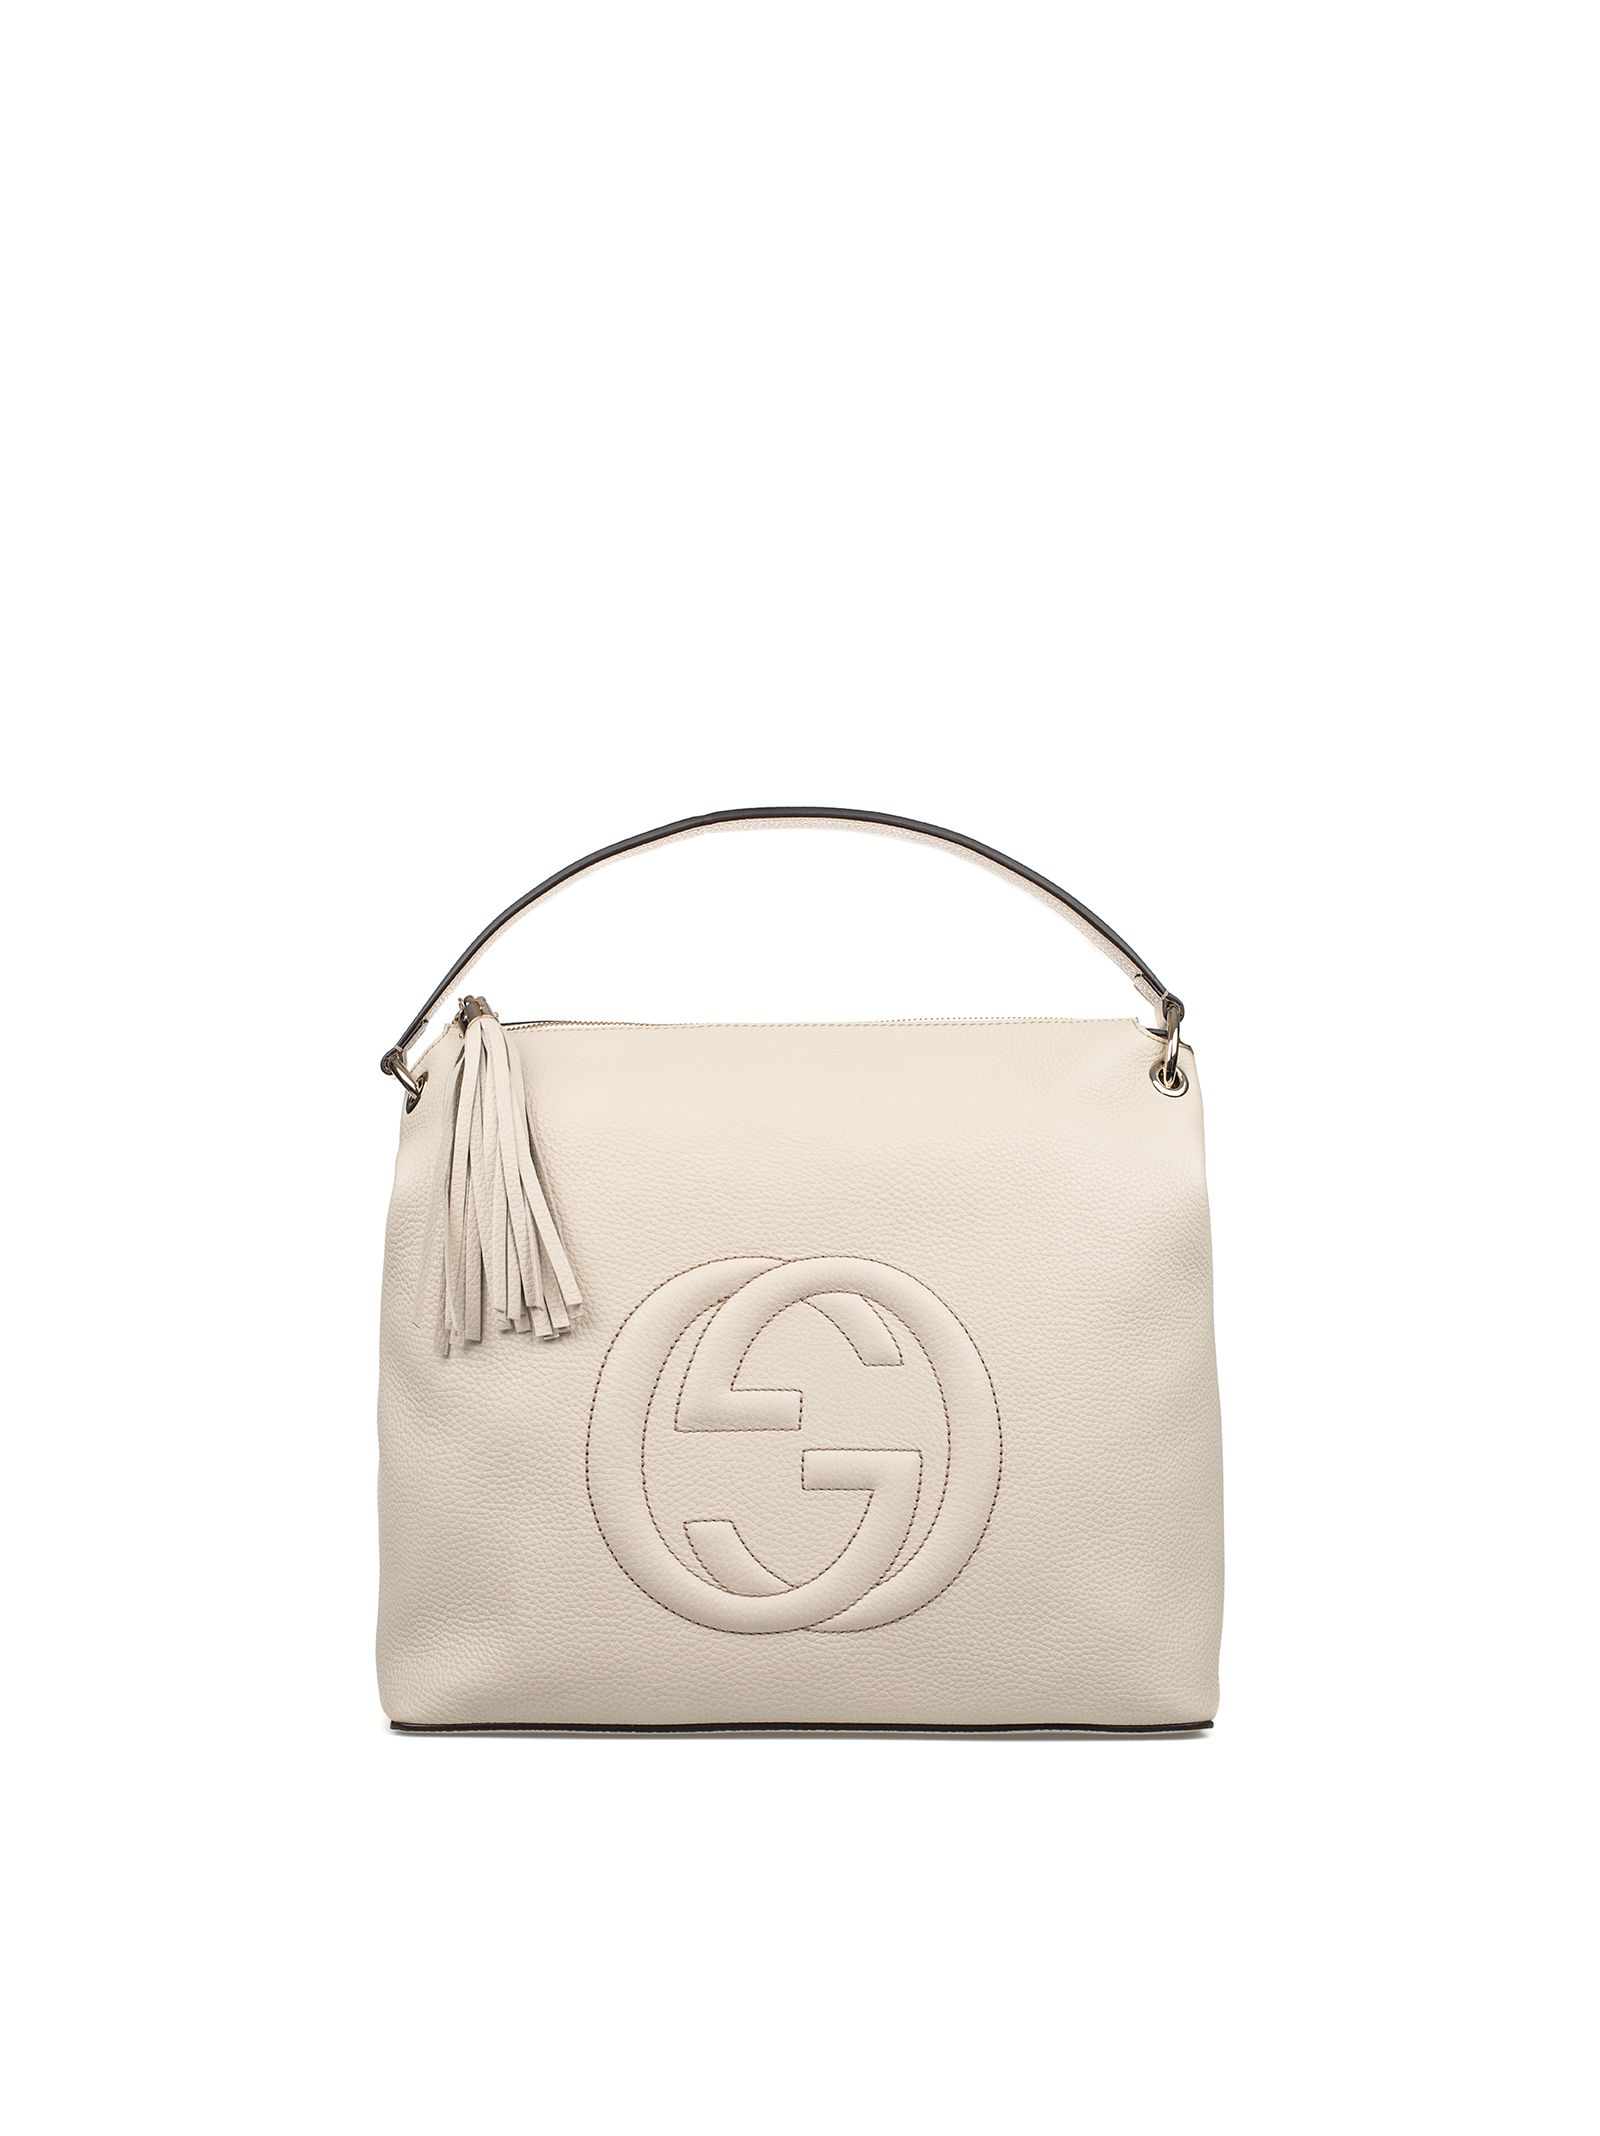 gucci female 45883 chalk soho hammered leather shoulder bag